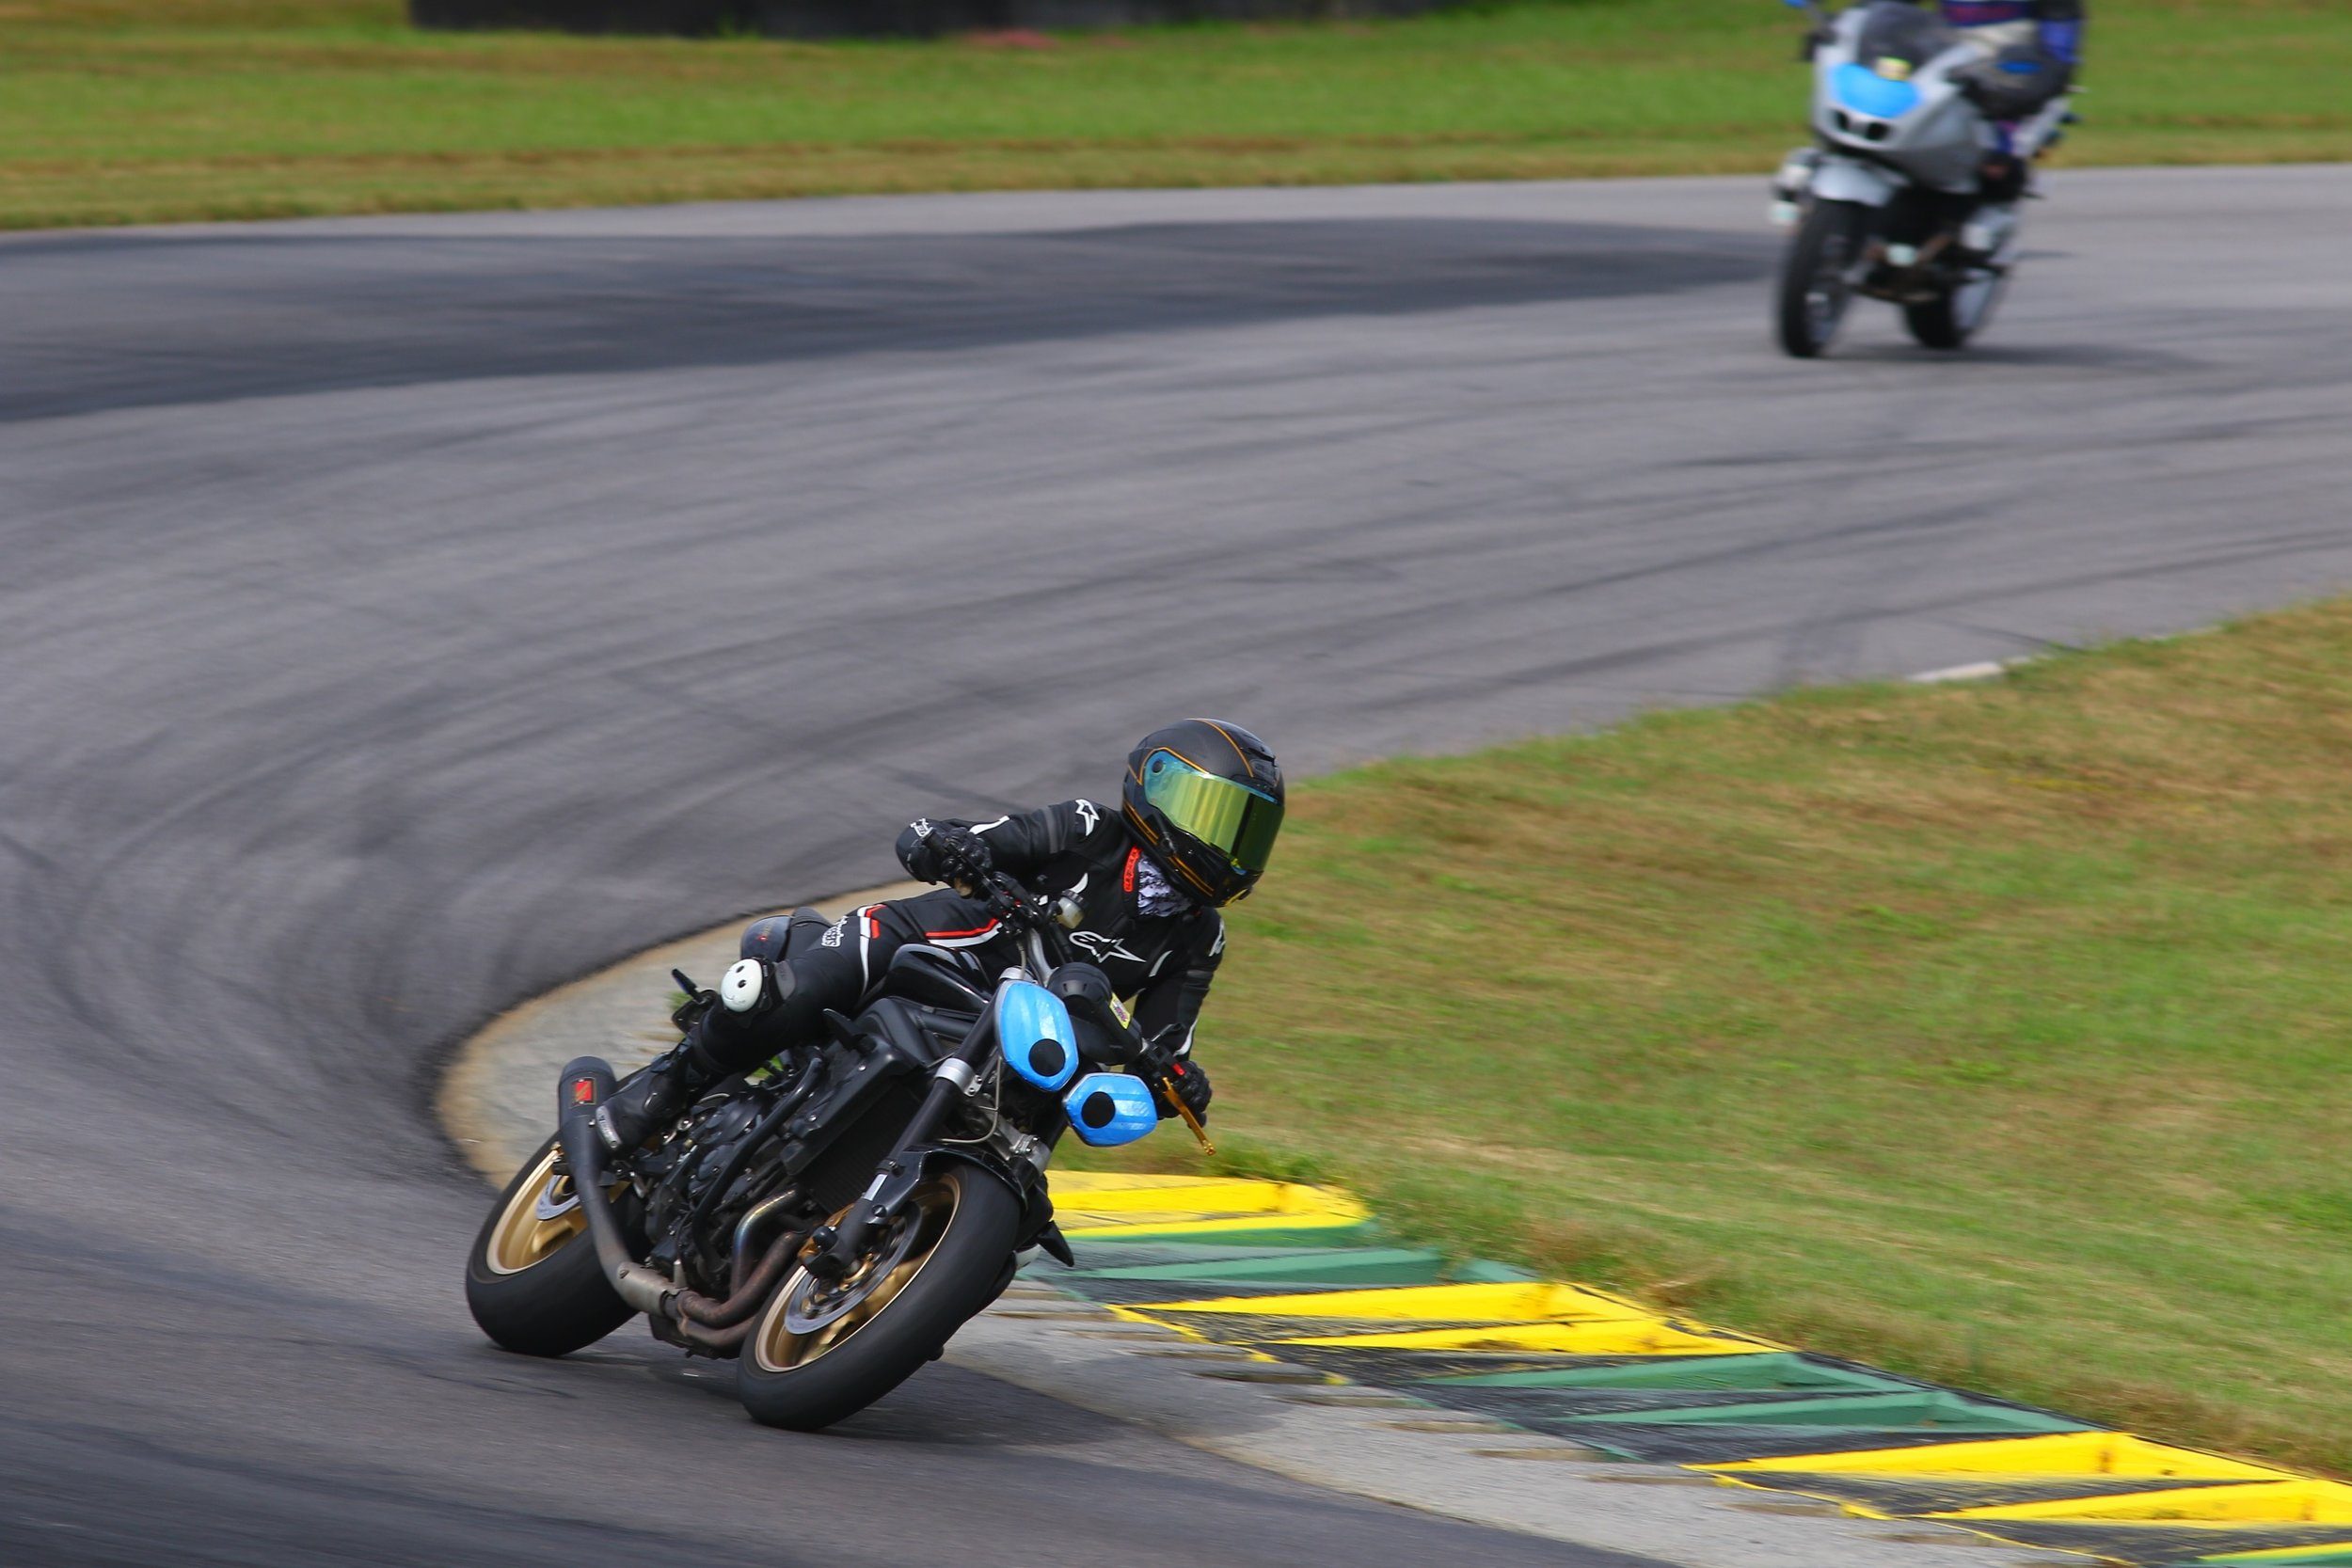 Trying my best to hug those apexes and keep a tight, inside line per the Mantra of Reg Pridmore.